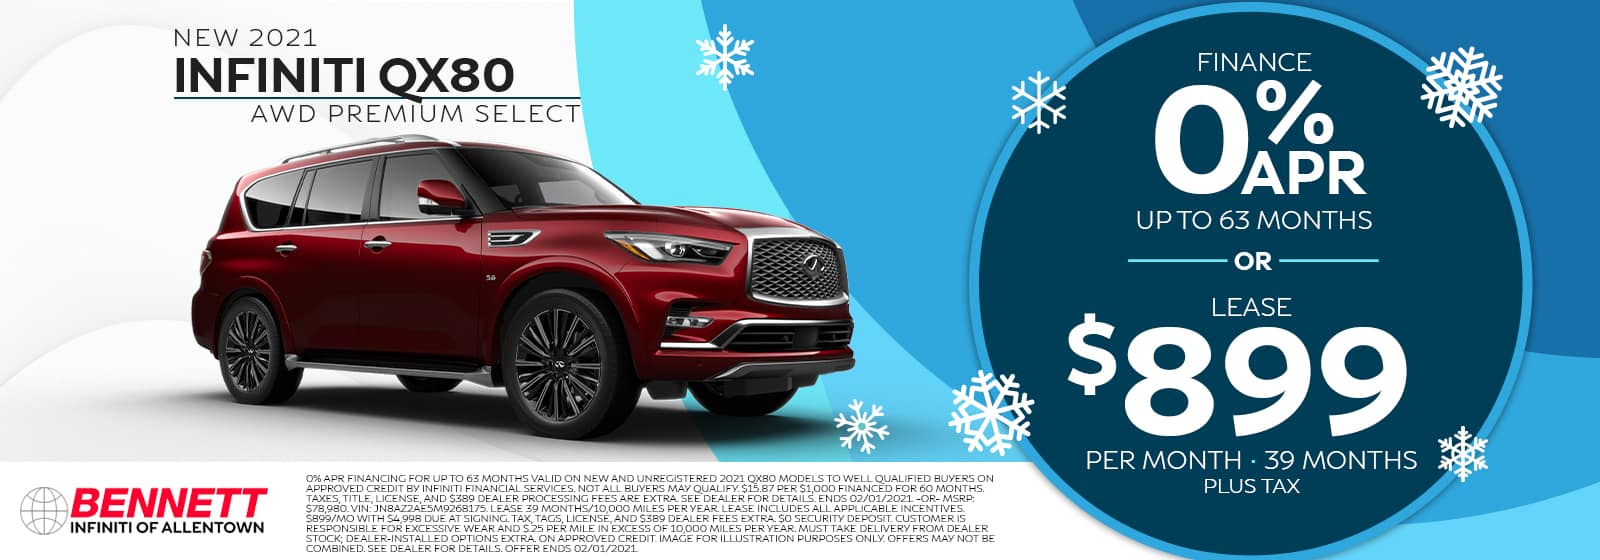 New 2021 INFINITI QX80 AWD Premium Select - Finance for 0% APR for up to 63 months or lease for $899 per month for 39 months (plus tax).